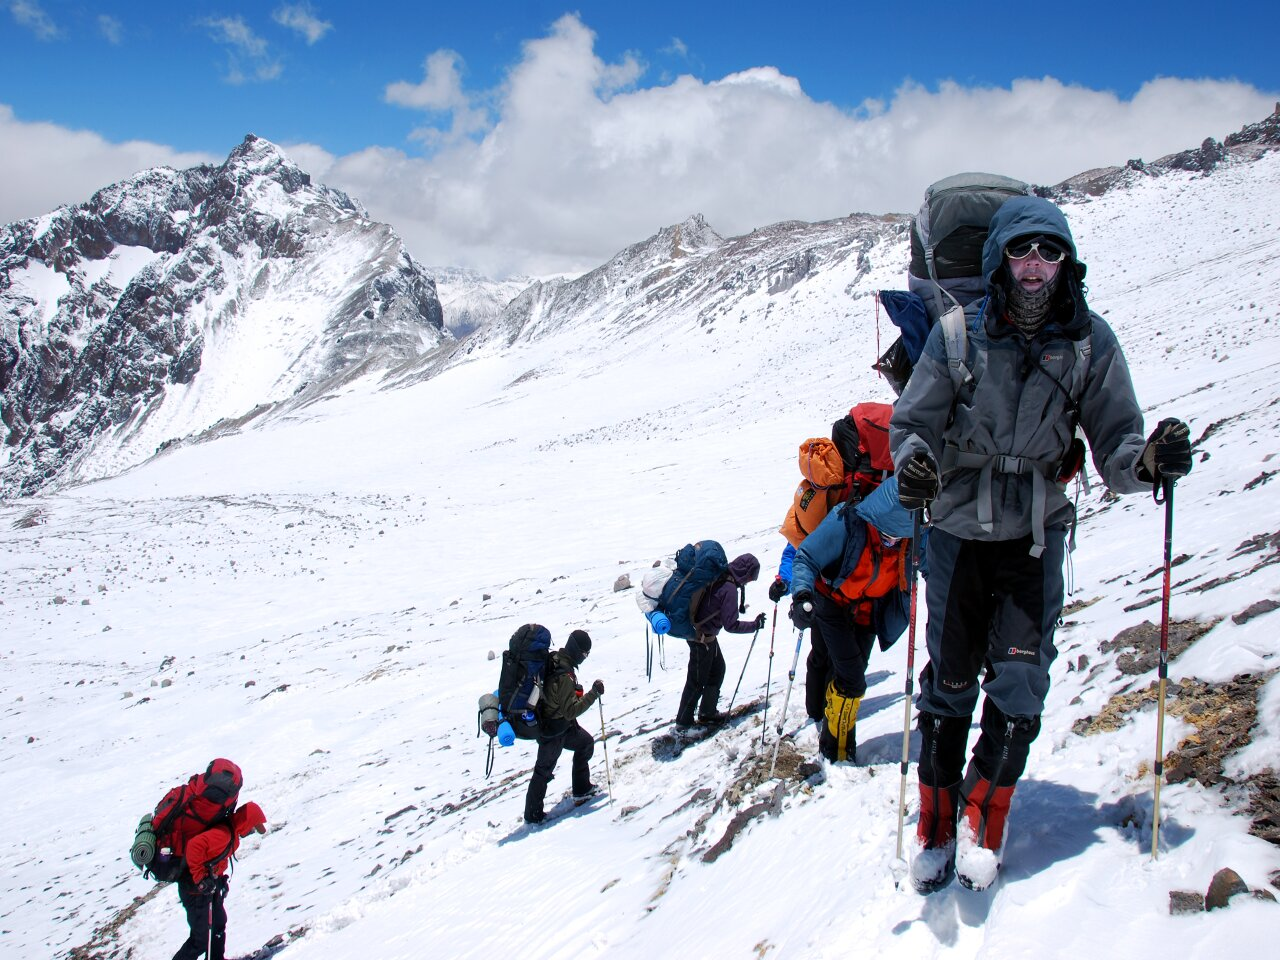 The high-altitude slow plod